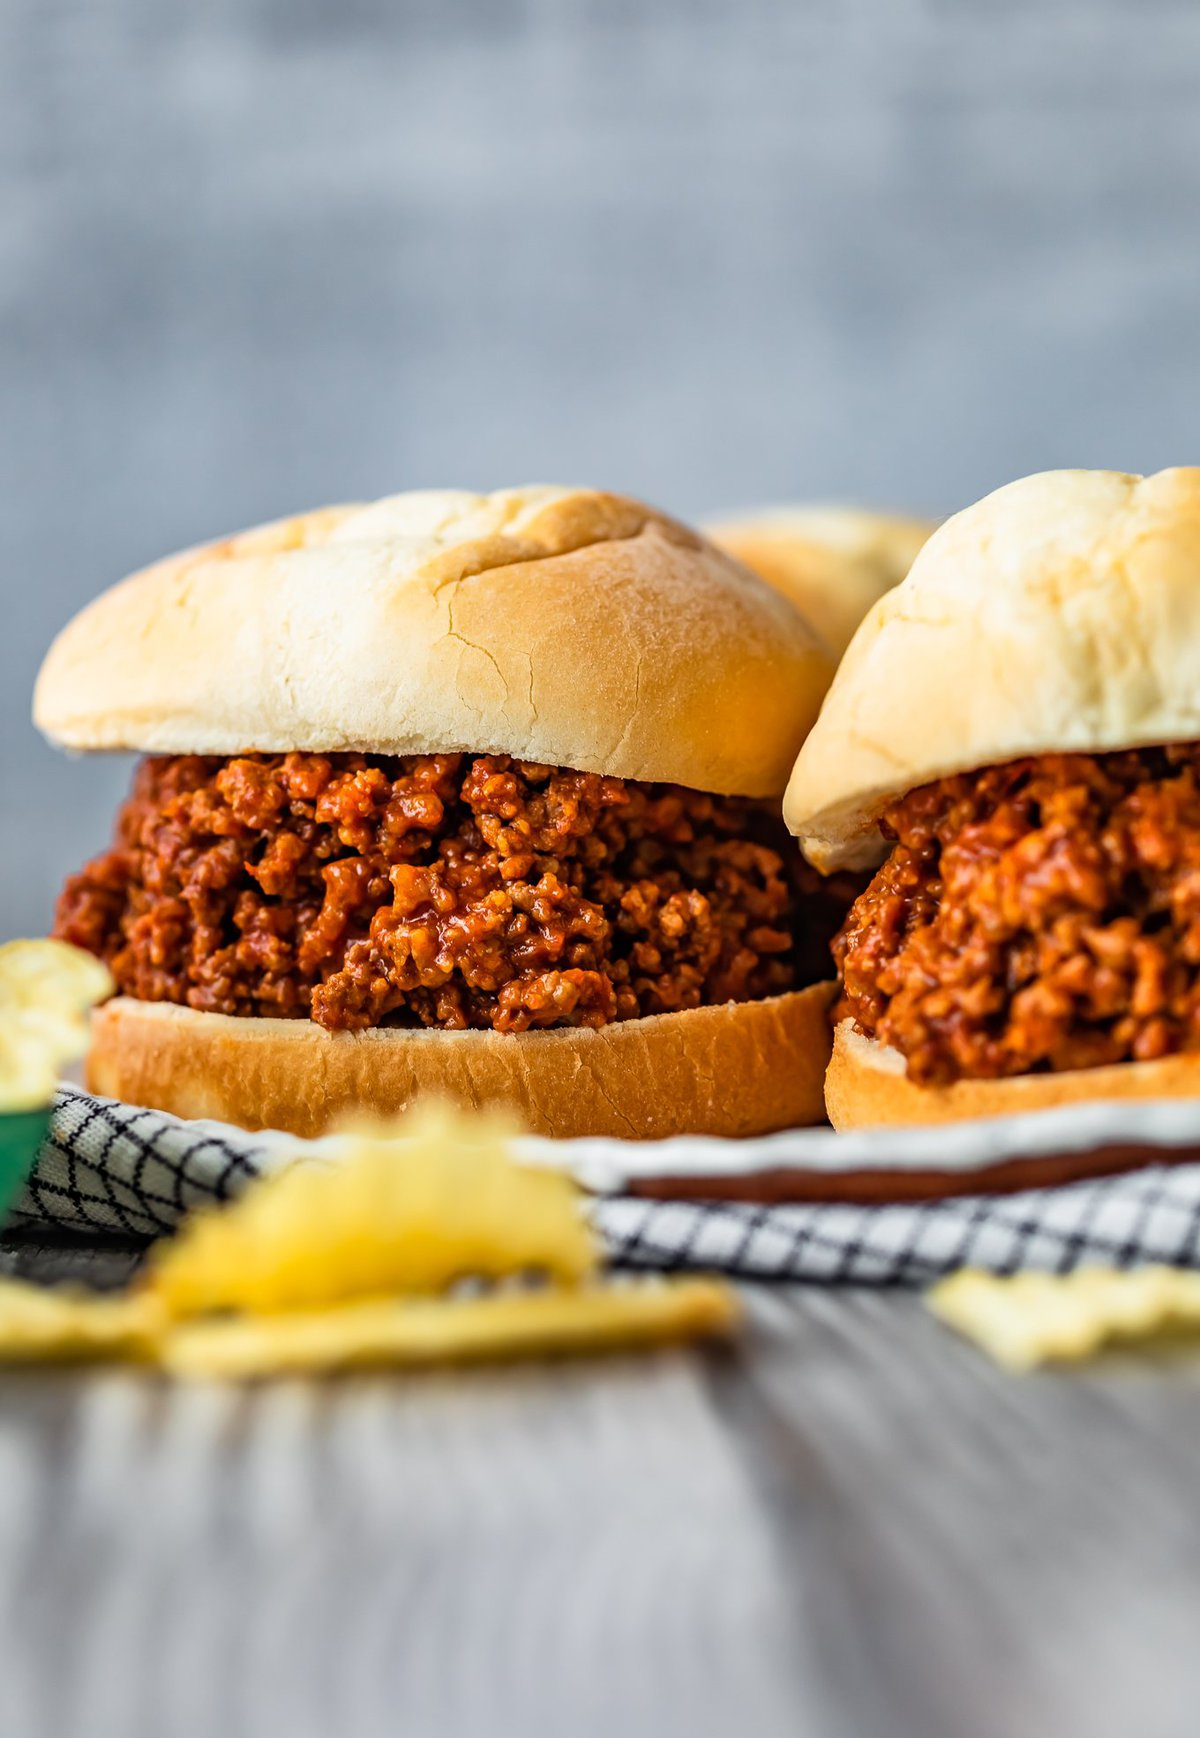 sloppy joes on a table